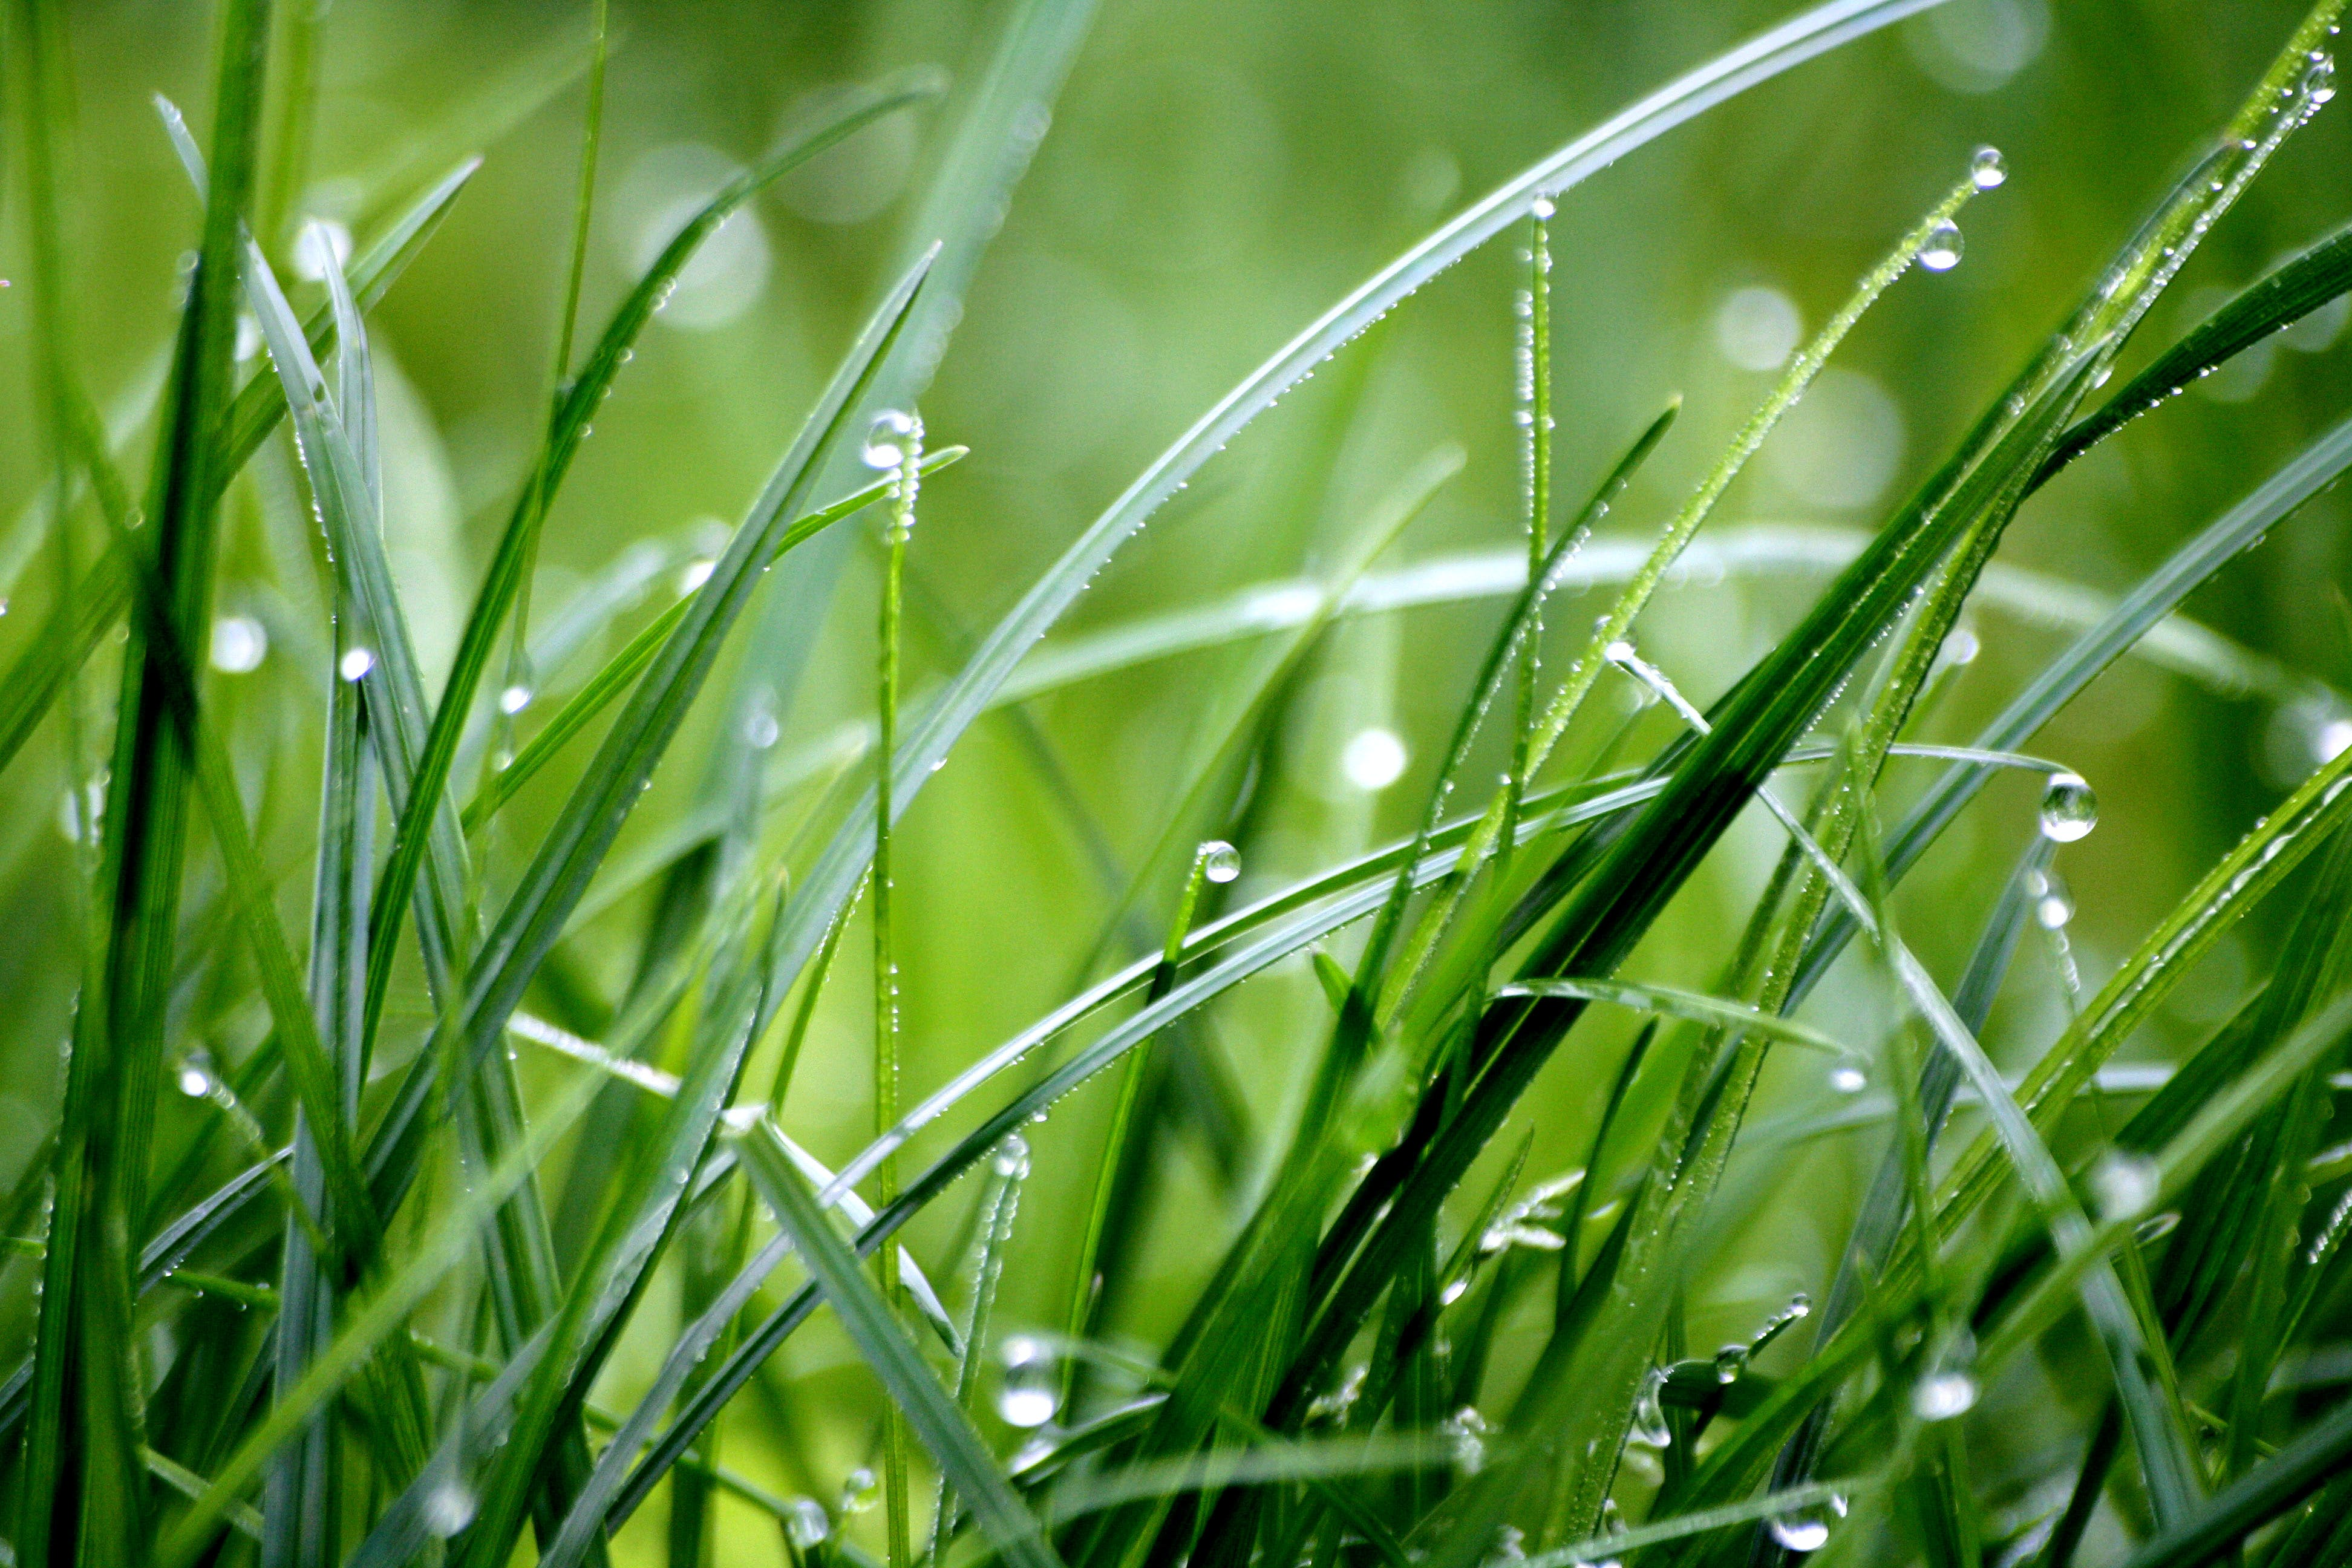 Macro Photography of Droplets on Grass